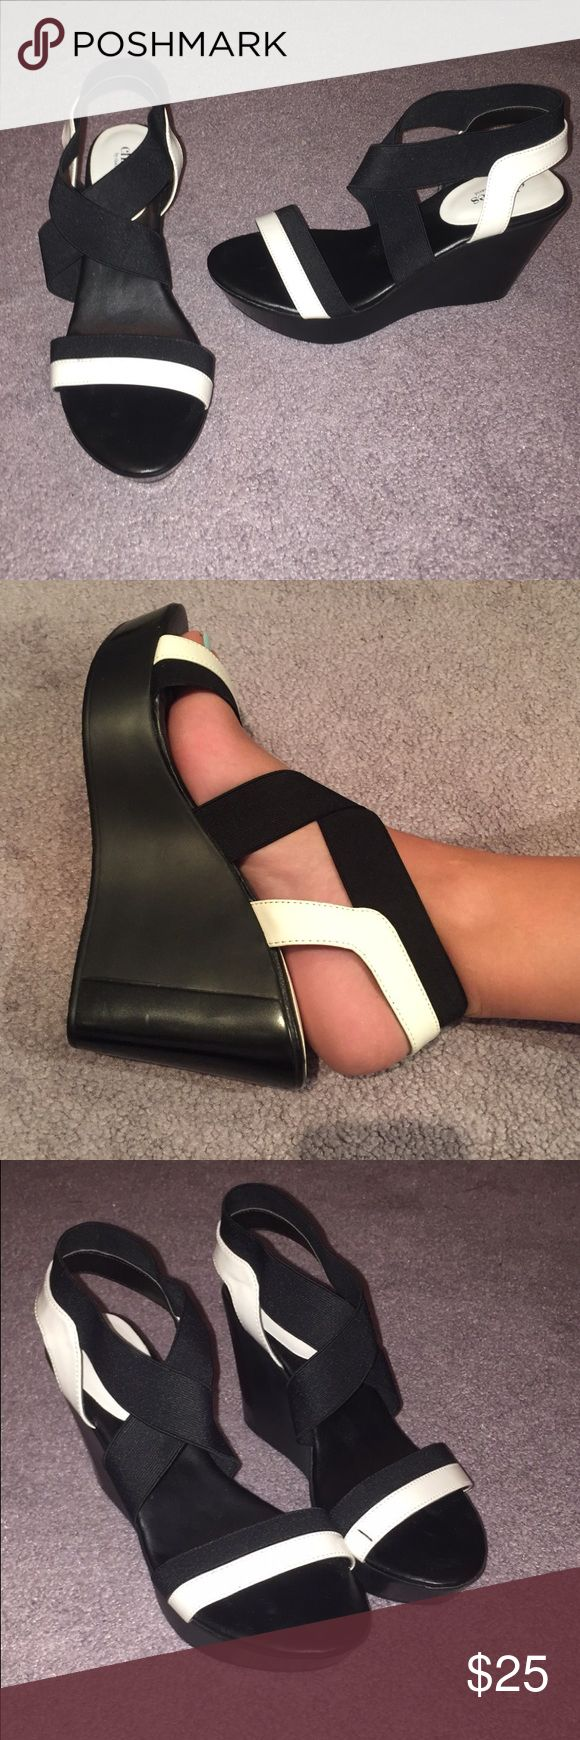 Black and white Strappy Heel The wedge makes these heels super comfortable! Worn once! Charles David Shoes Heels